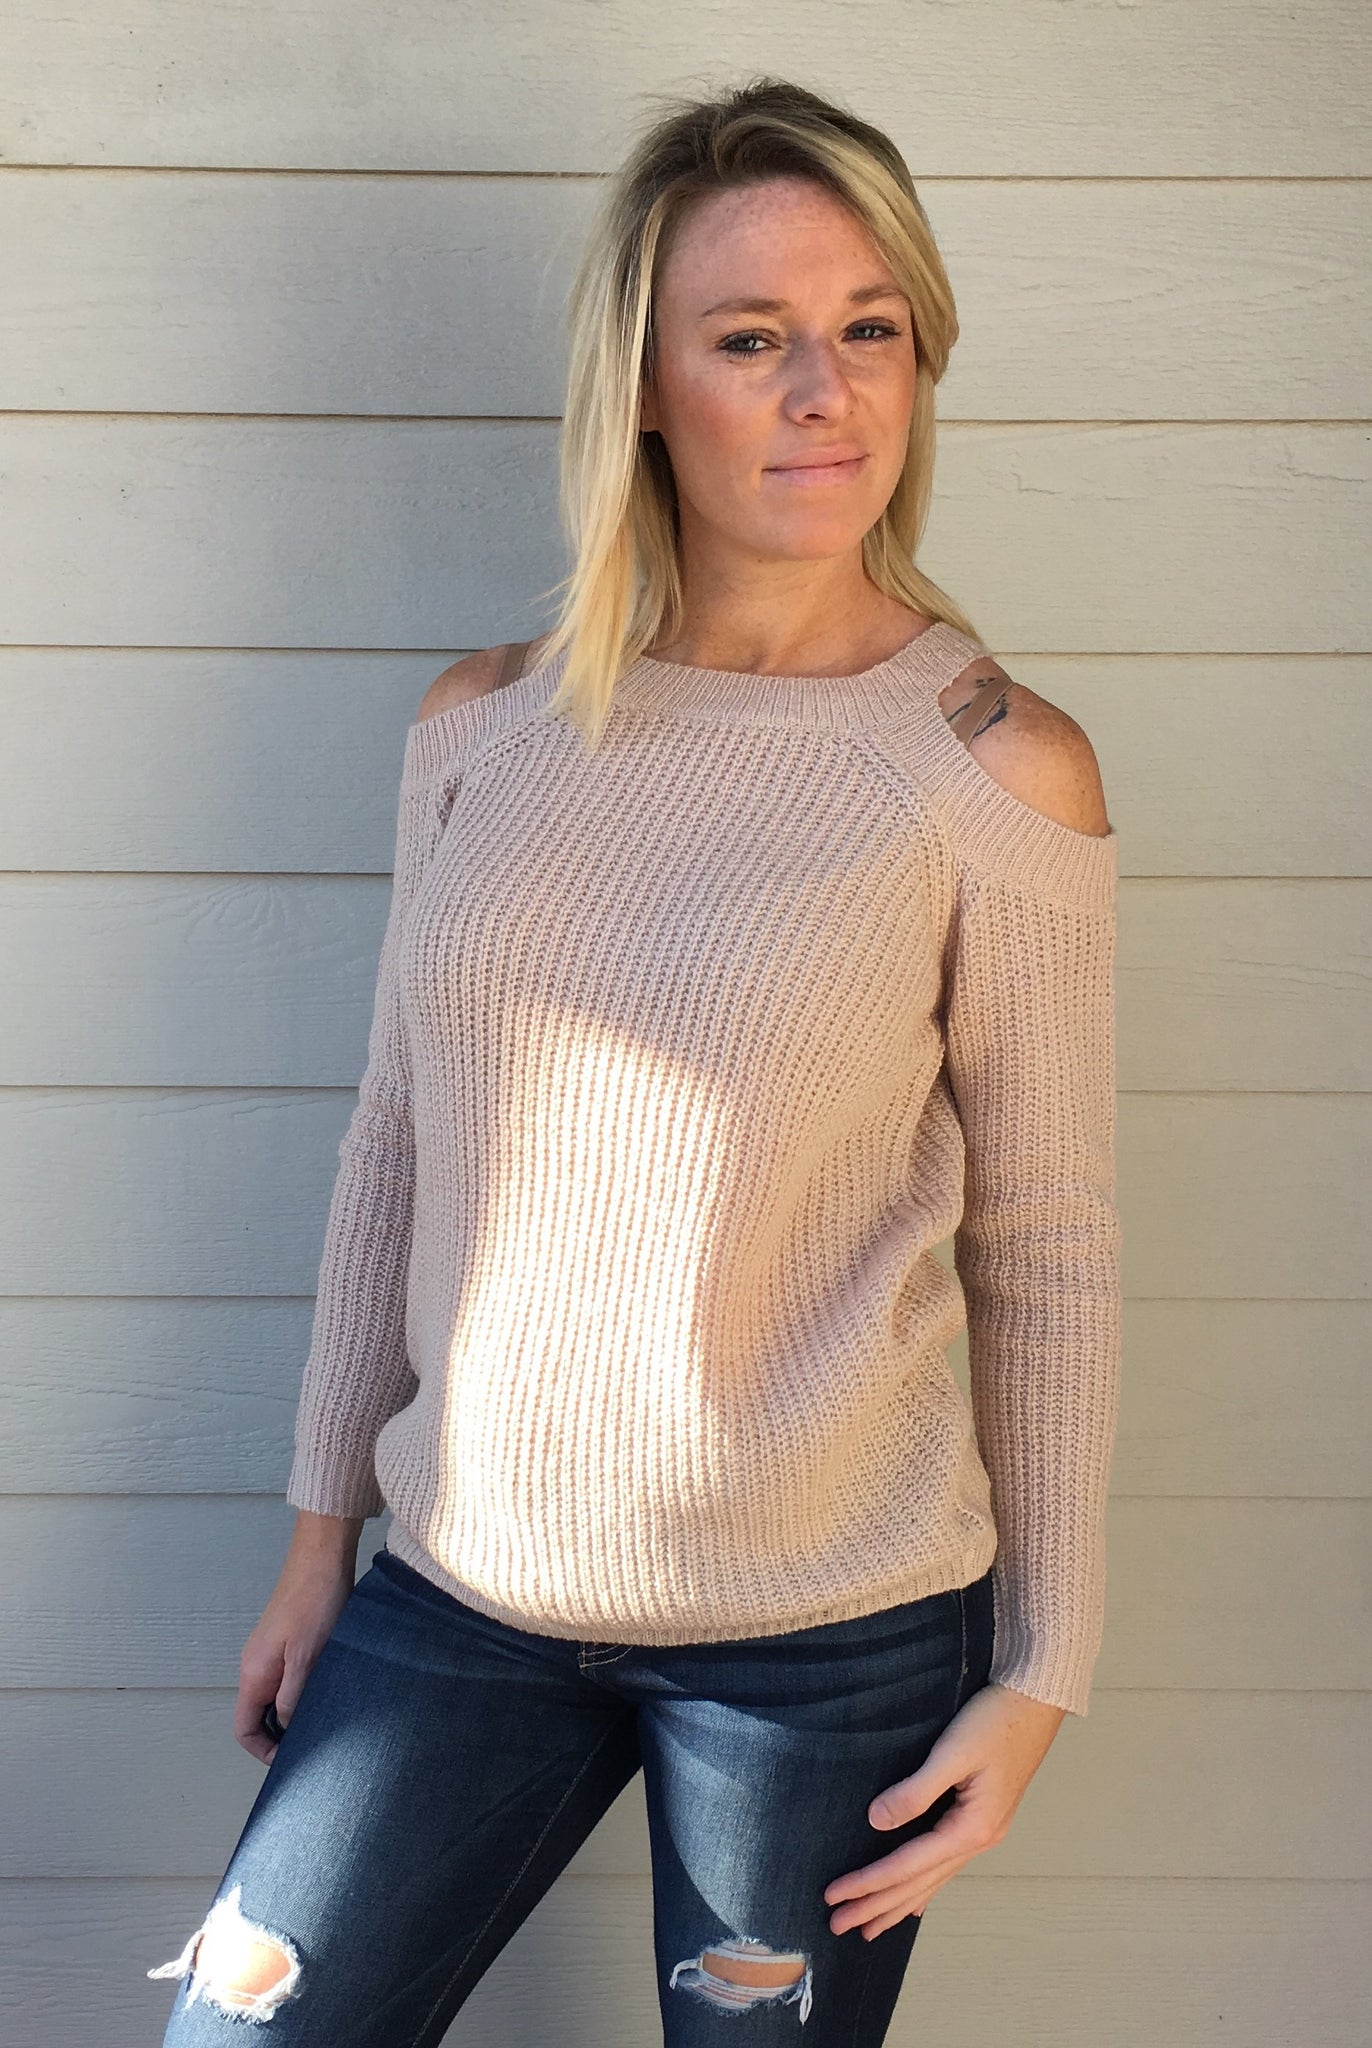 Crew Neck, Cold Shoulder, Long Sleeve Pull Over Sweater Top